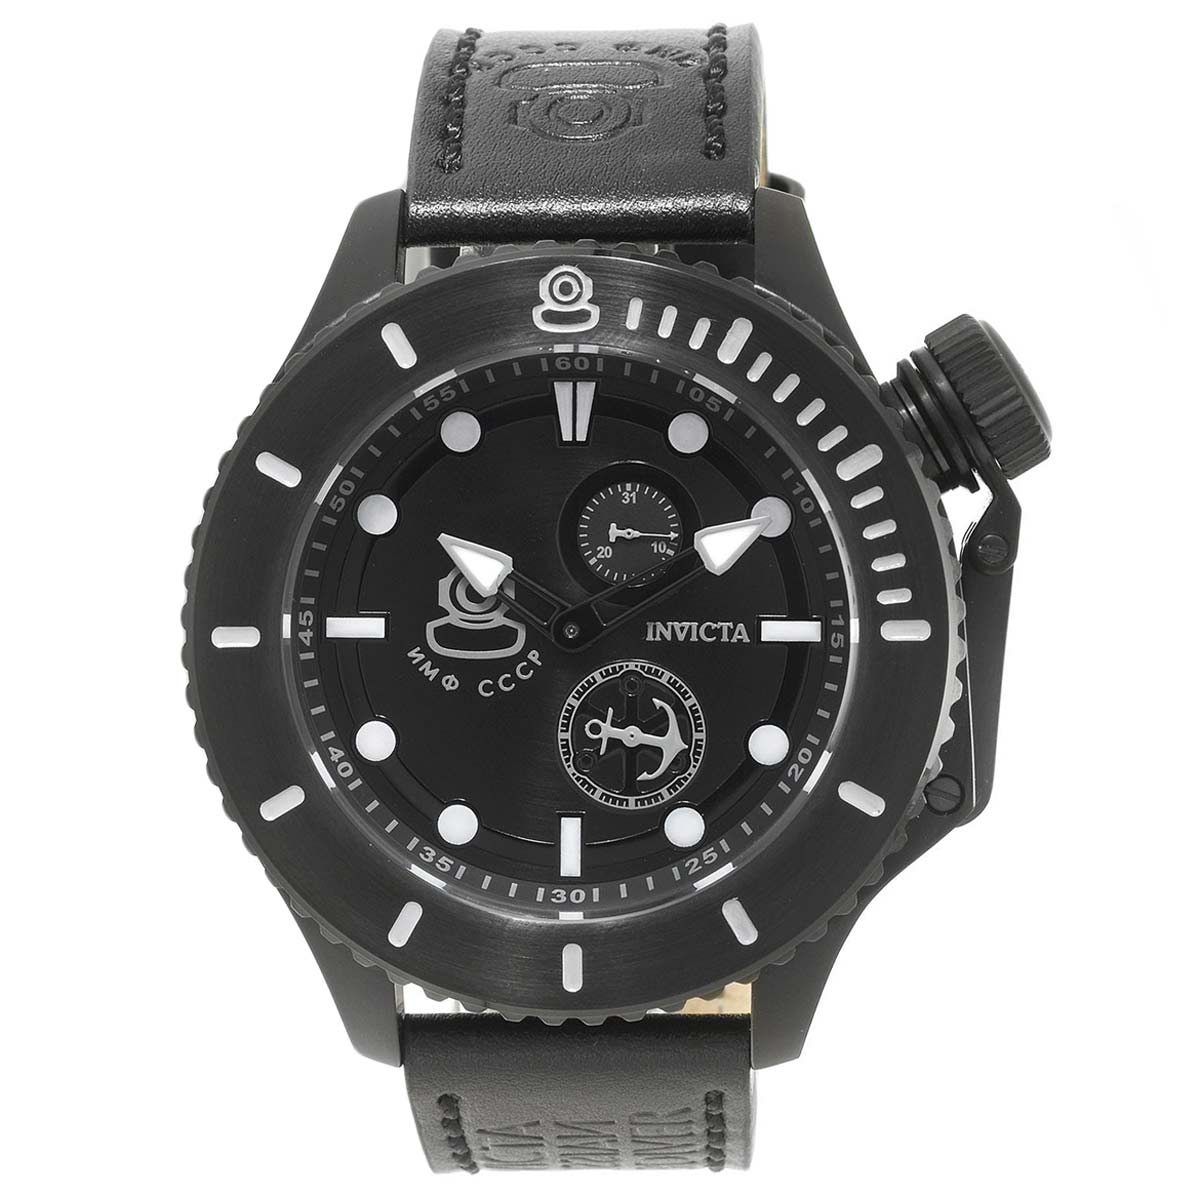 Invicta 22013 Men's Russian Diver Black Dial Black Leather Strap Watch